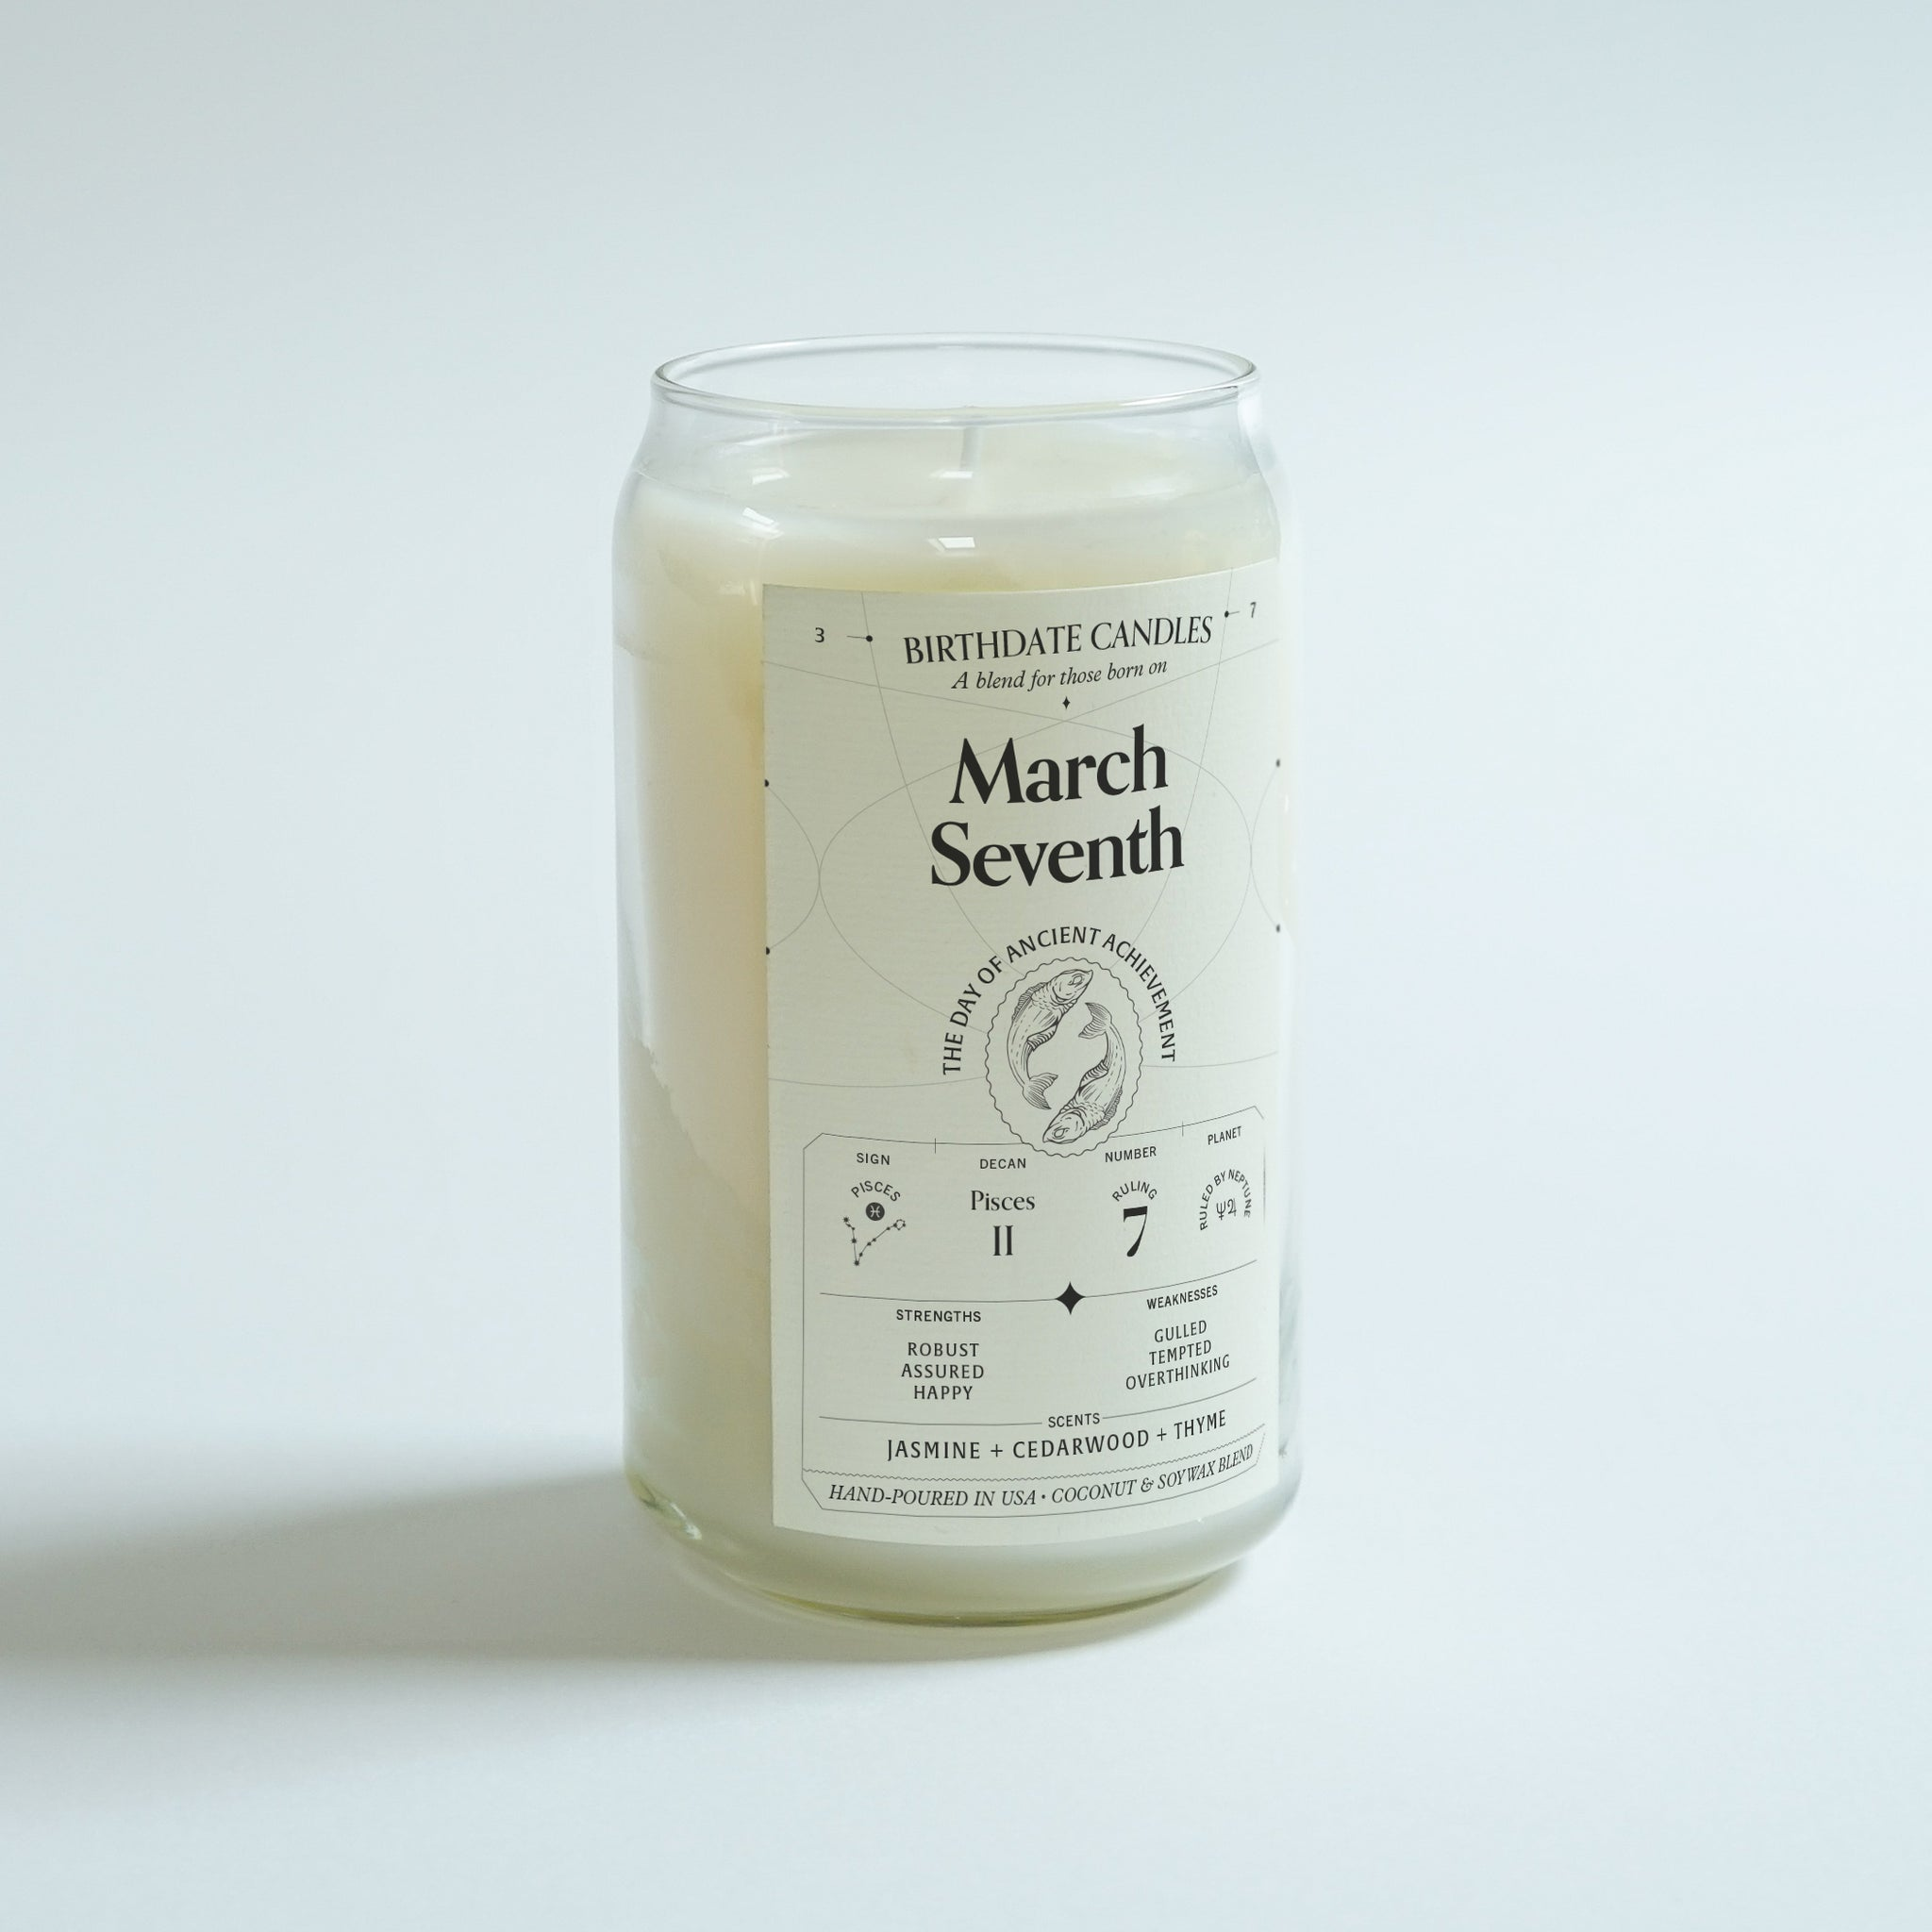 The March Seventh Birthday Candle